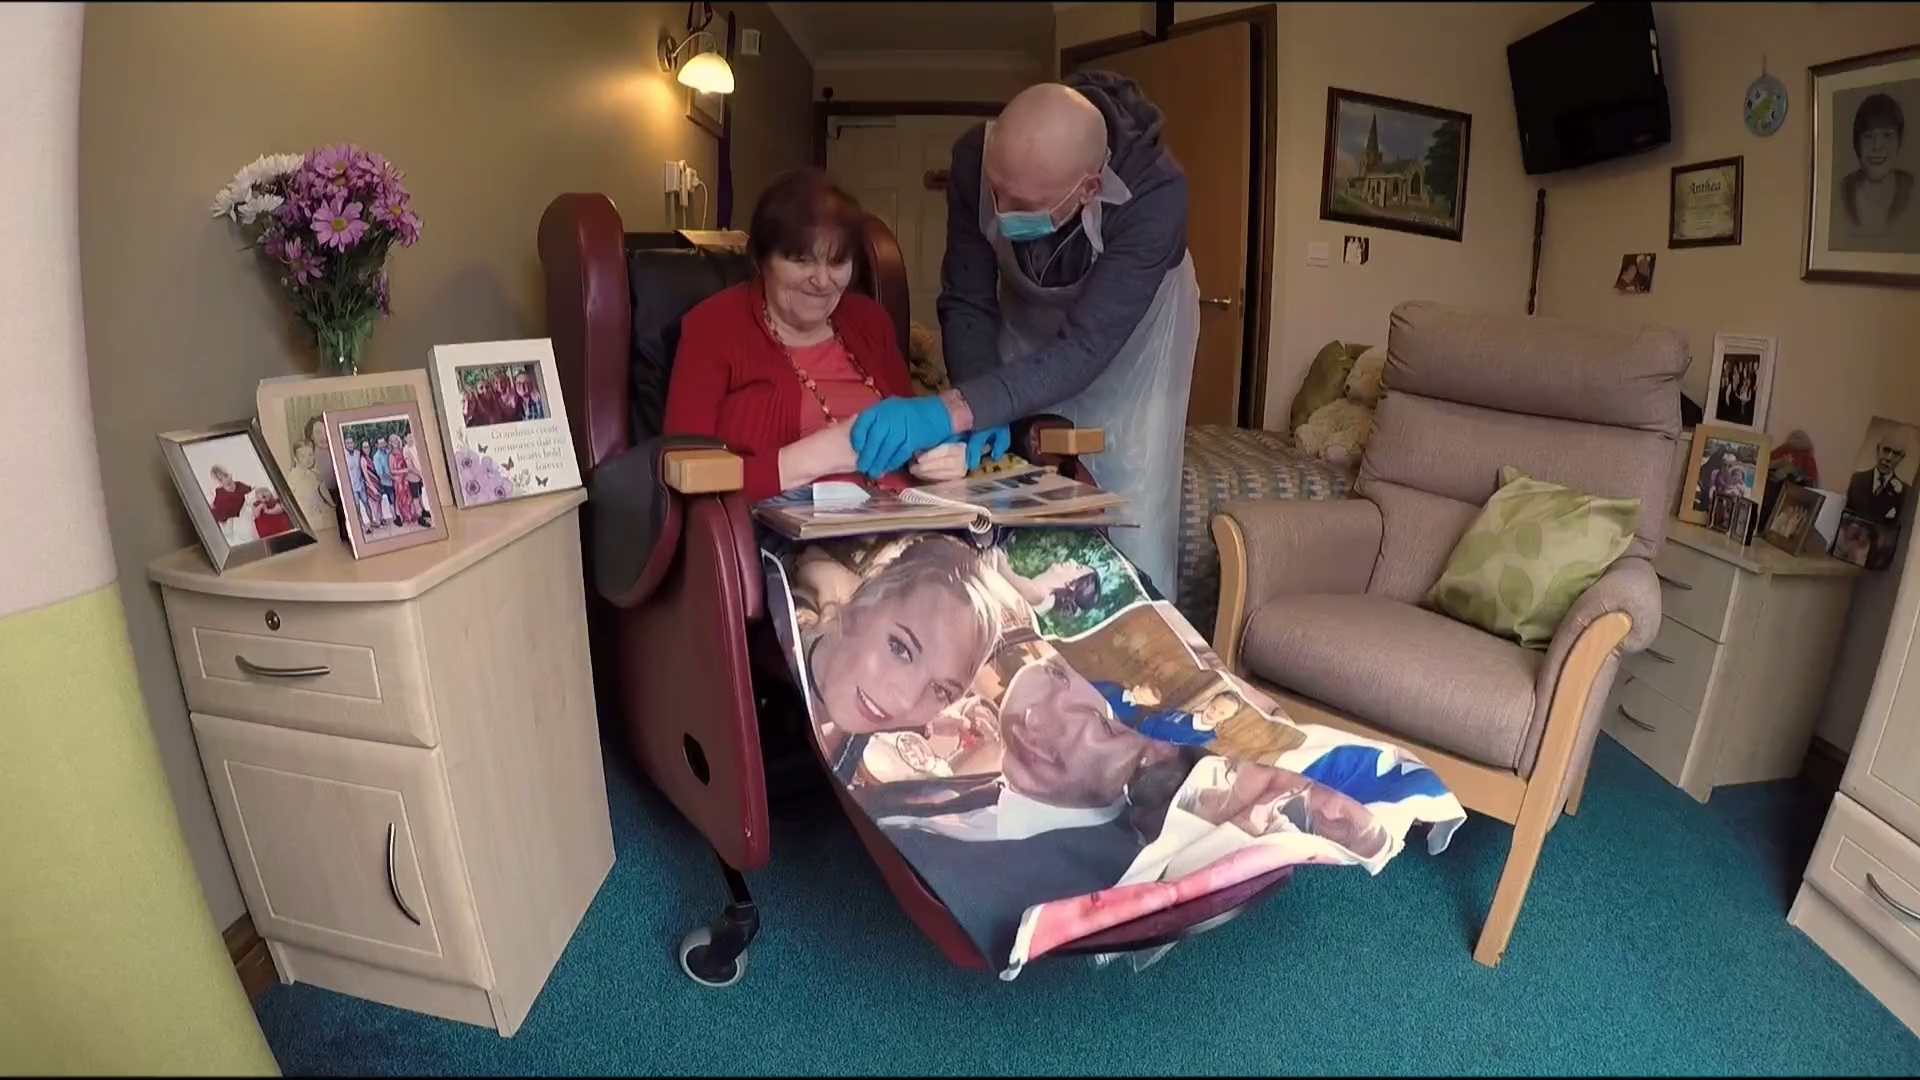 Care home residents in England finally able to meet and hold hands with a loved one - channel 4